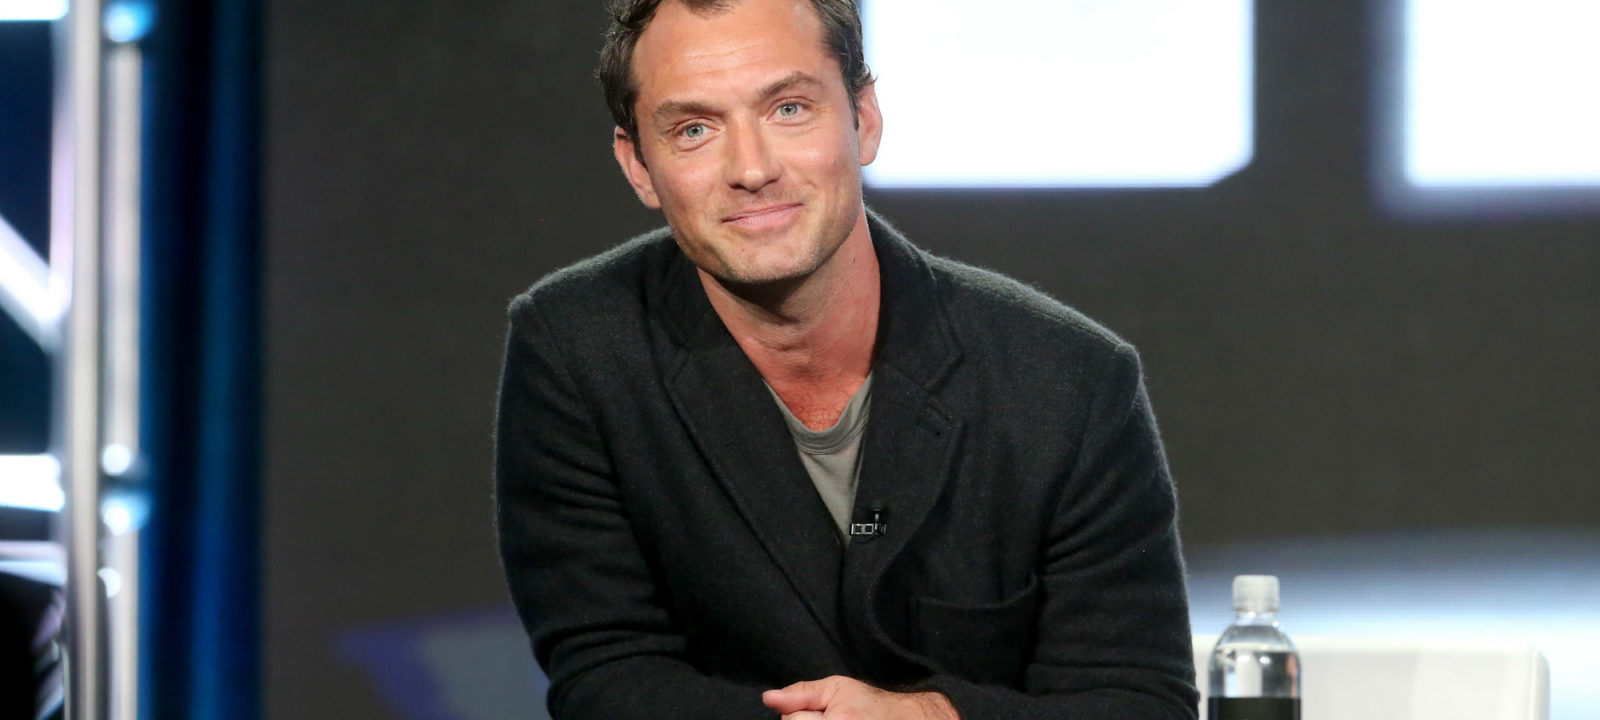 Casting News: Jude Law to Star in Limited Series 'The ...